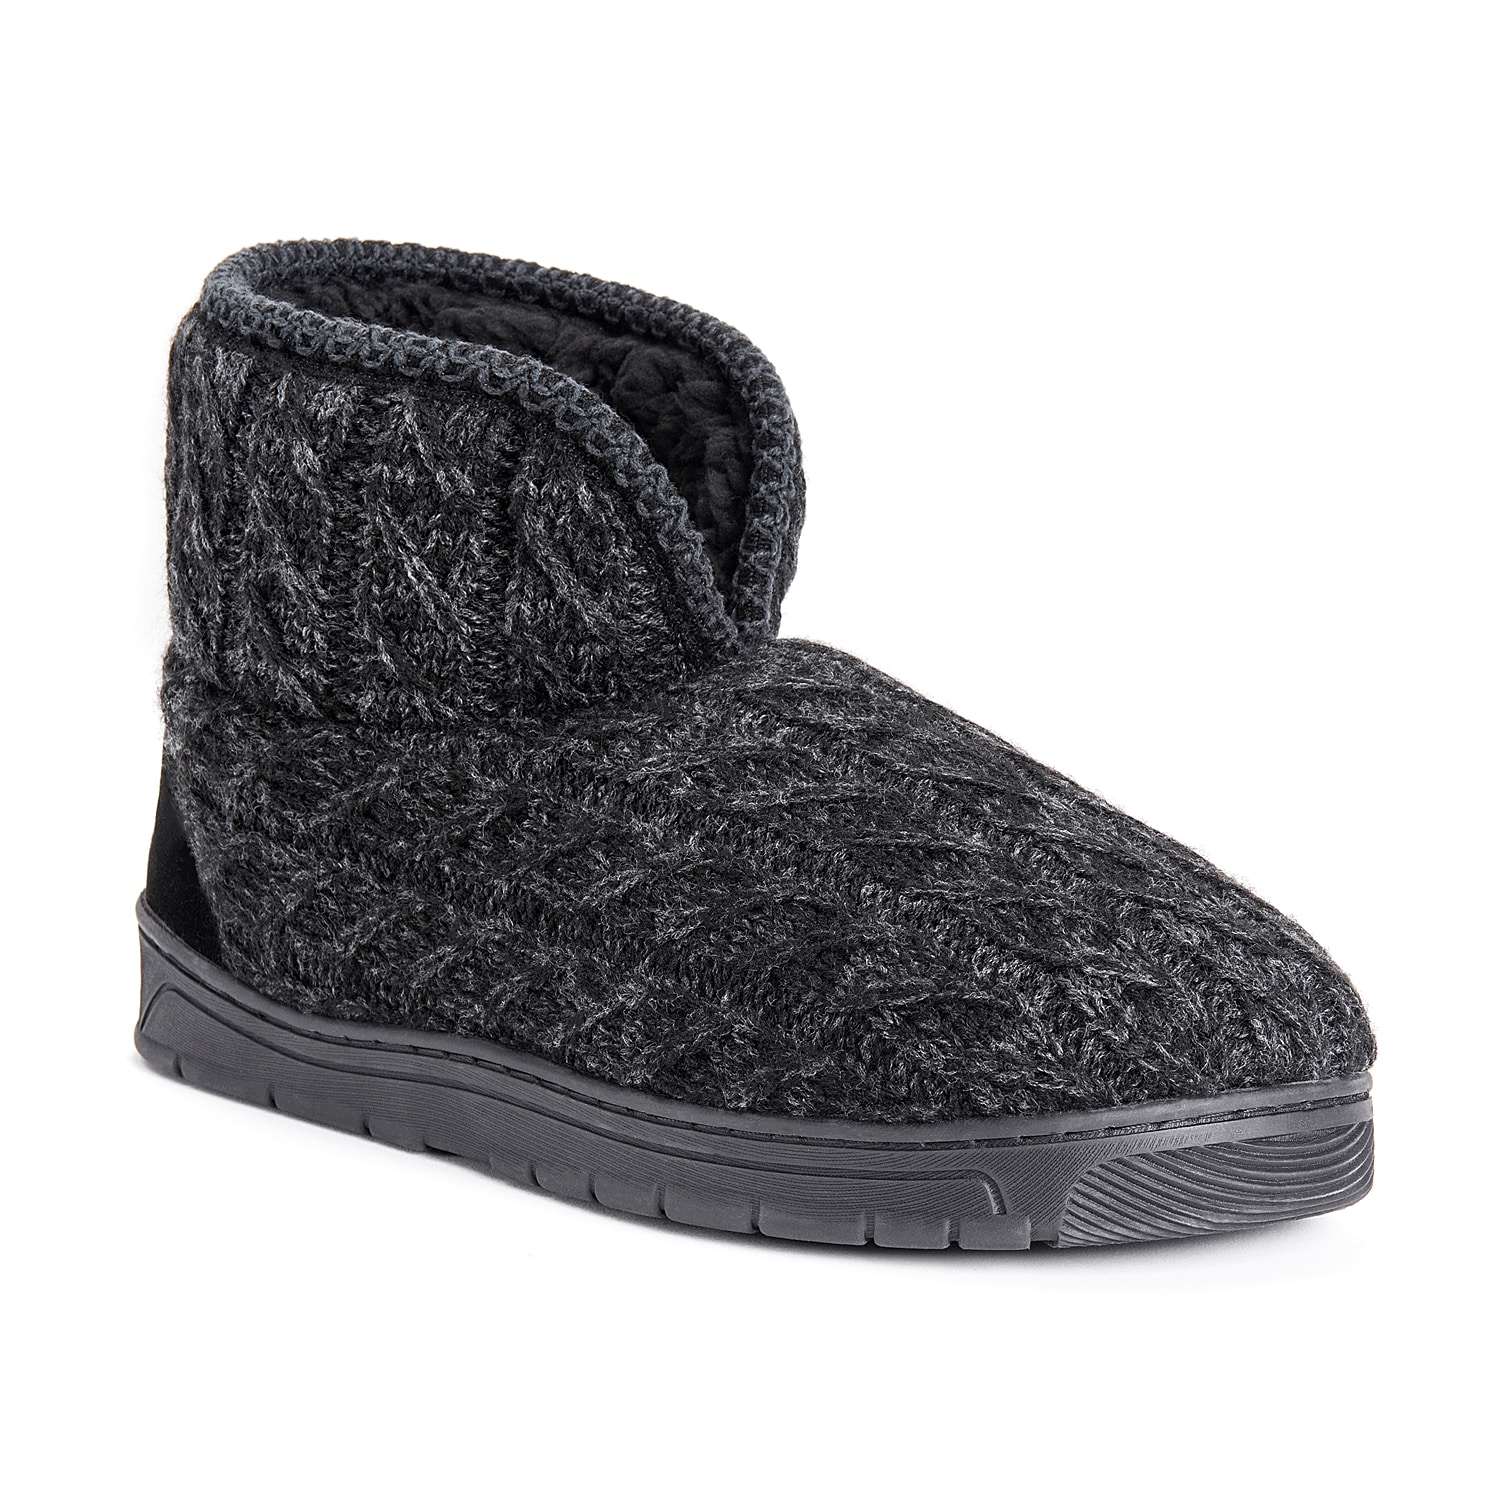 For a look that will keep you feeling good, pull on the Mark slipper from Muk Luks! These boots feature a warm faux fur lining and a rubber traction sole that can be worn inside or out.